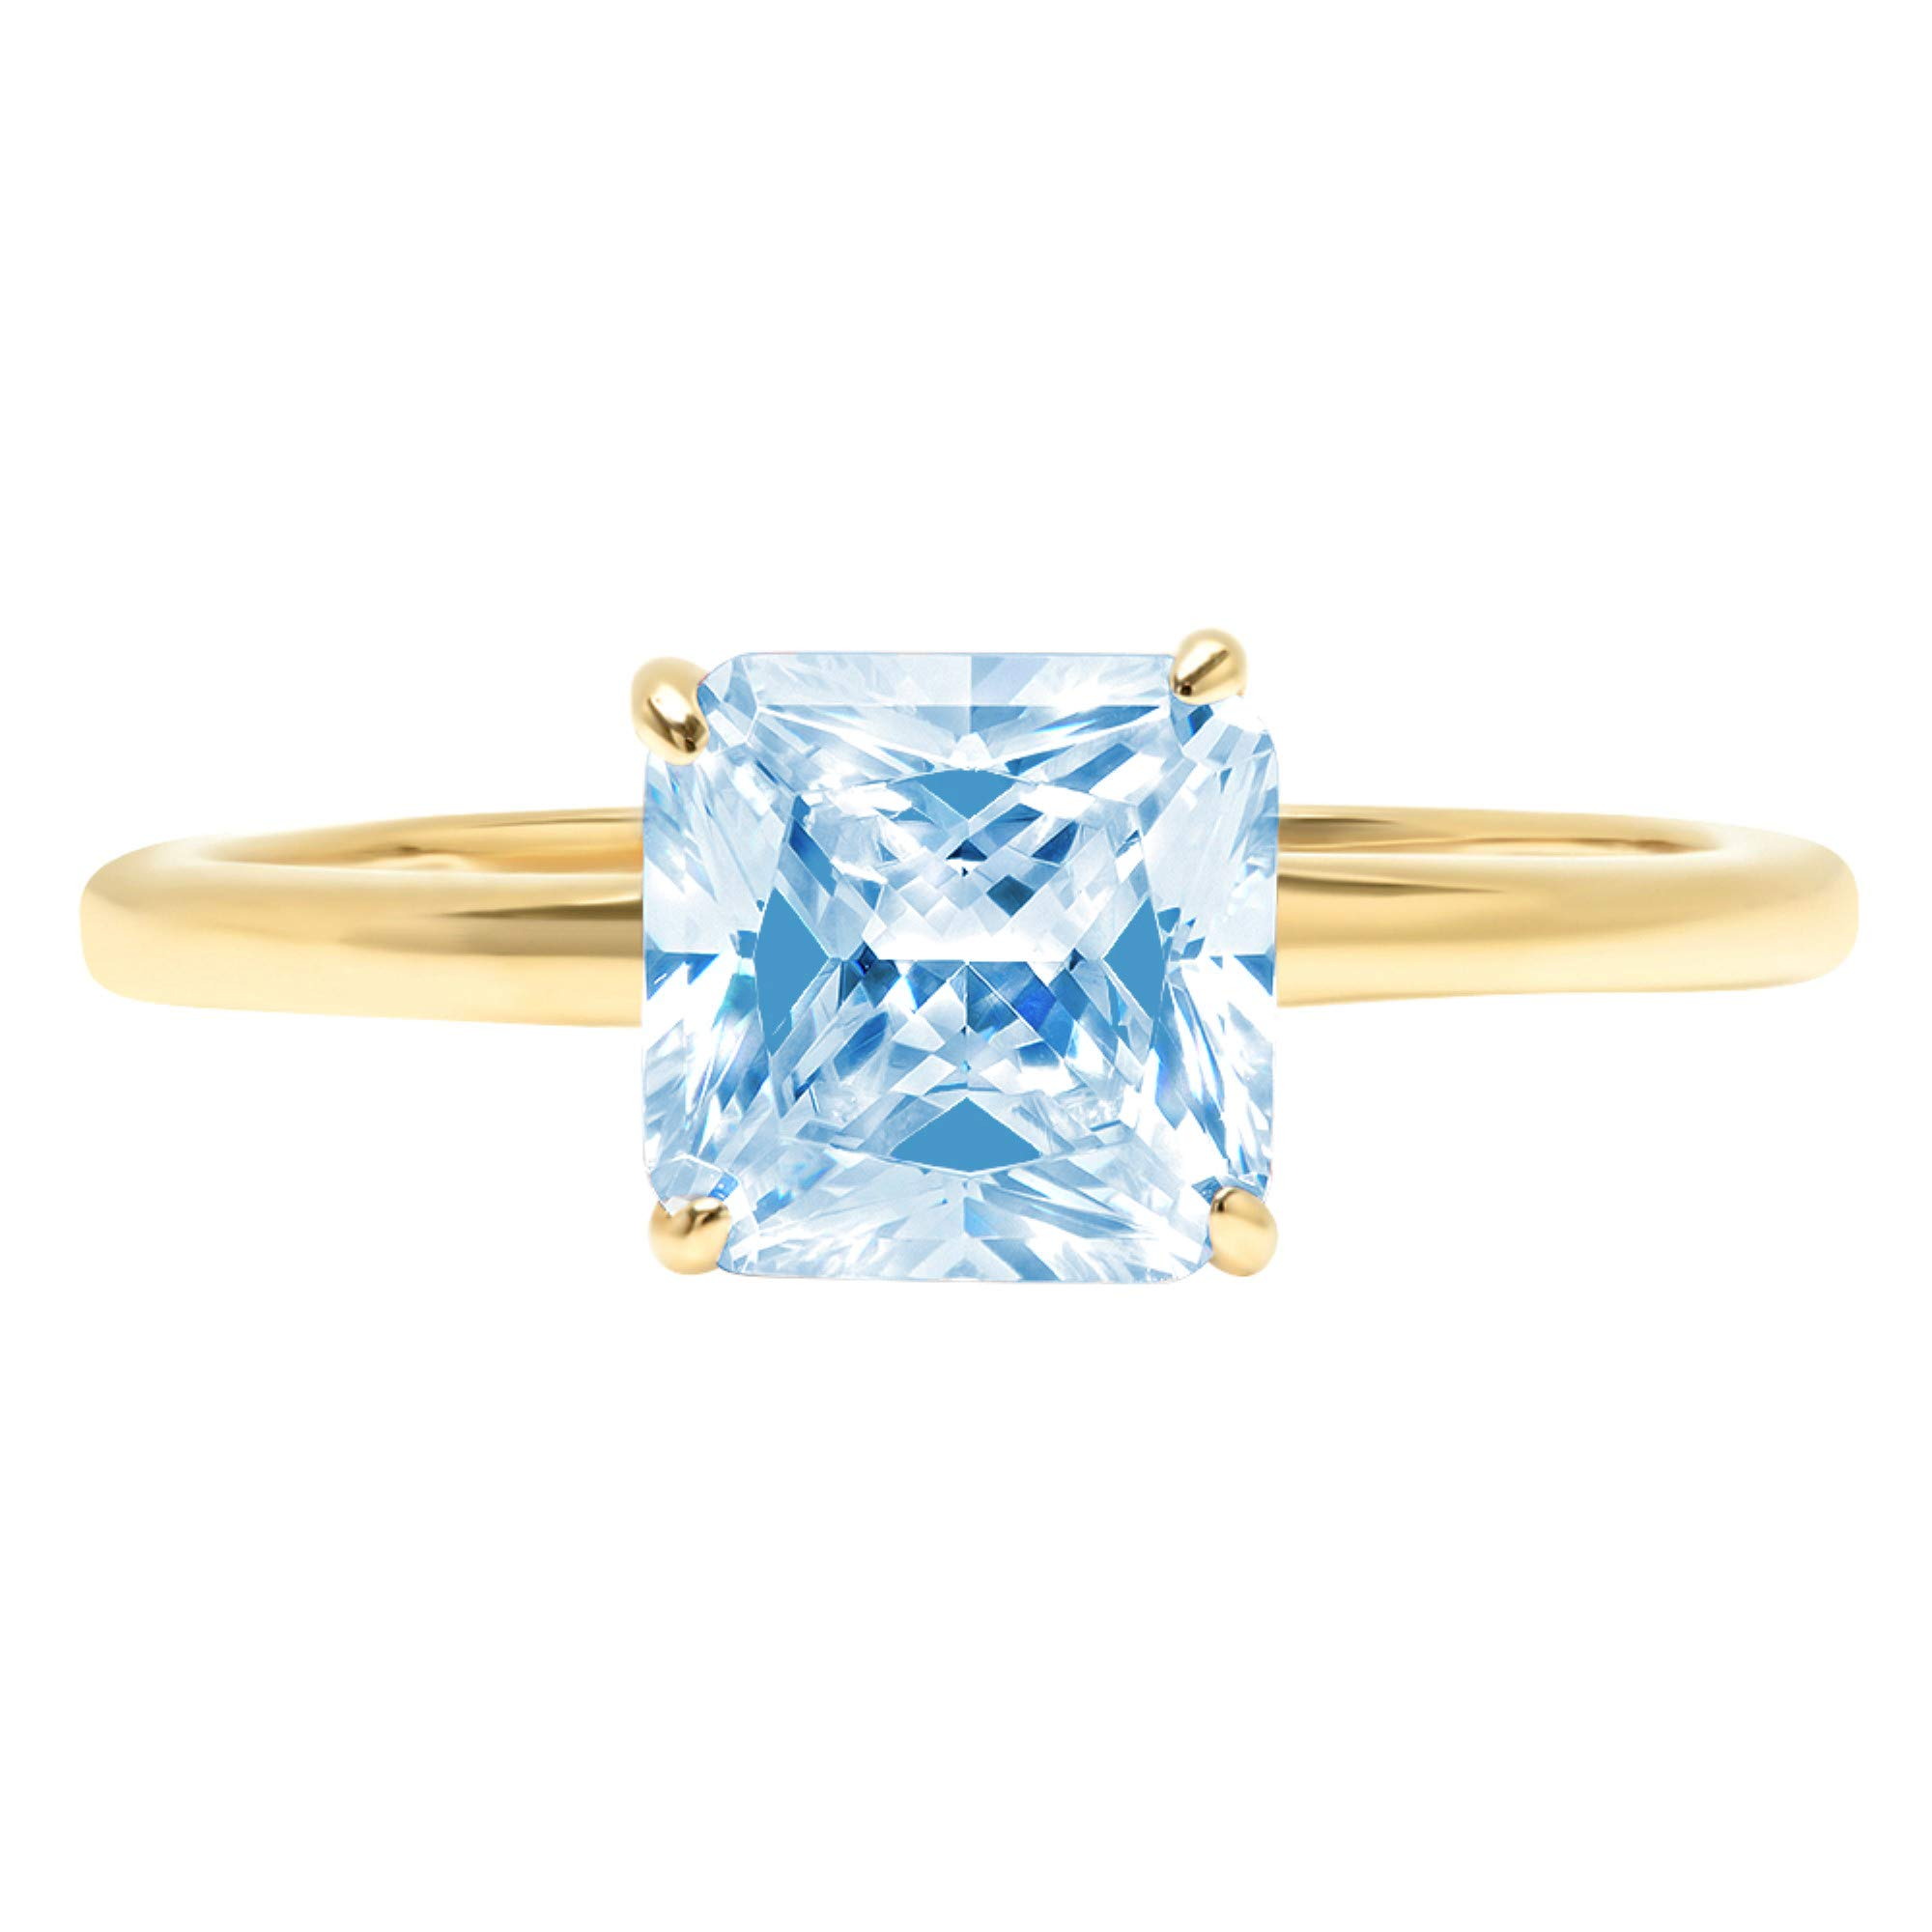 2.45ct Brilliant Asscher Cut Solitaire Aquamarine Blue Simulated Diamond CZ Ideal VVS1 D 4-Prong Classic Designer Statement Ring Solid Real 14k Yellow Gold for Women